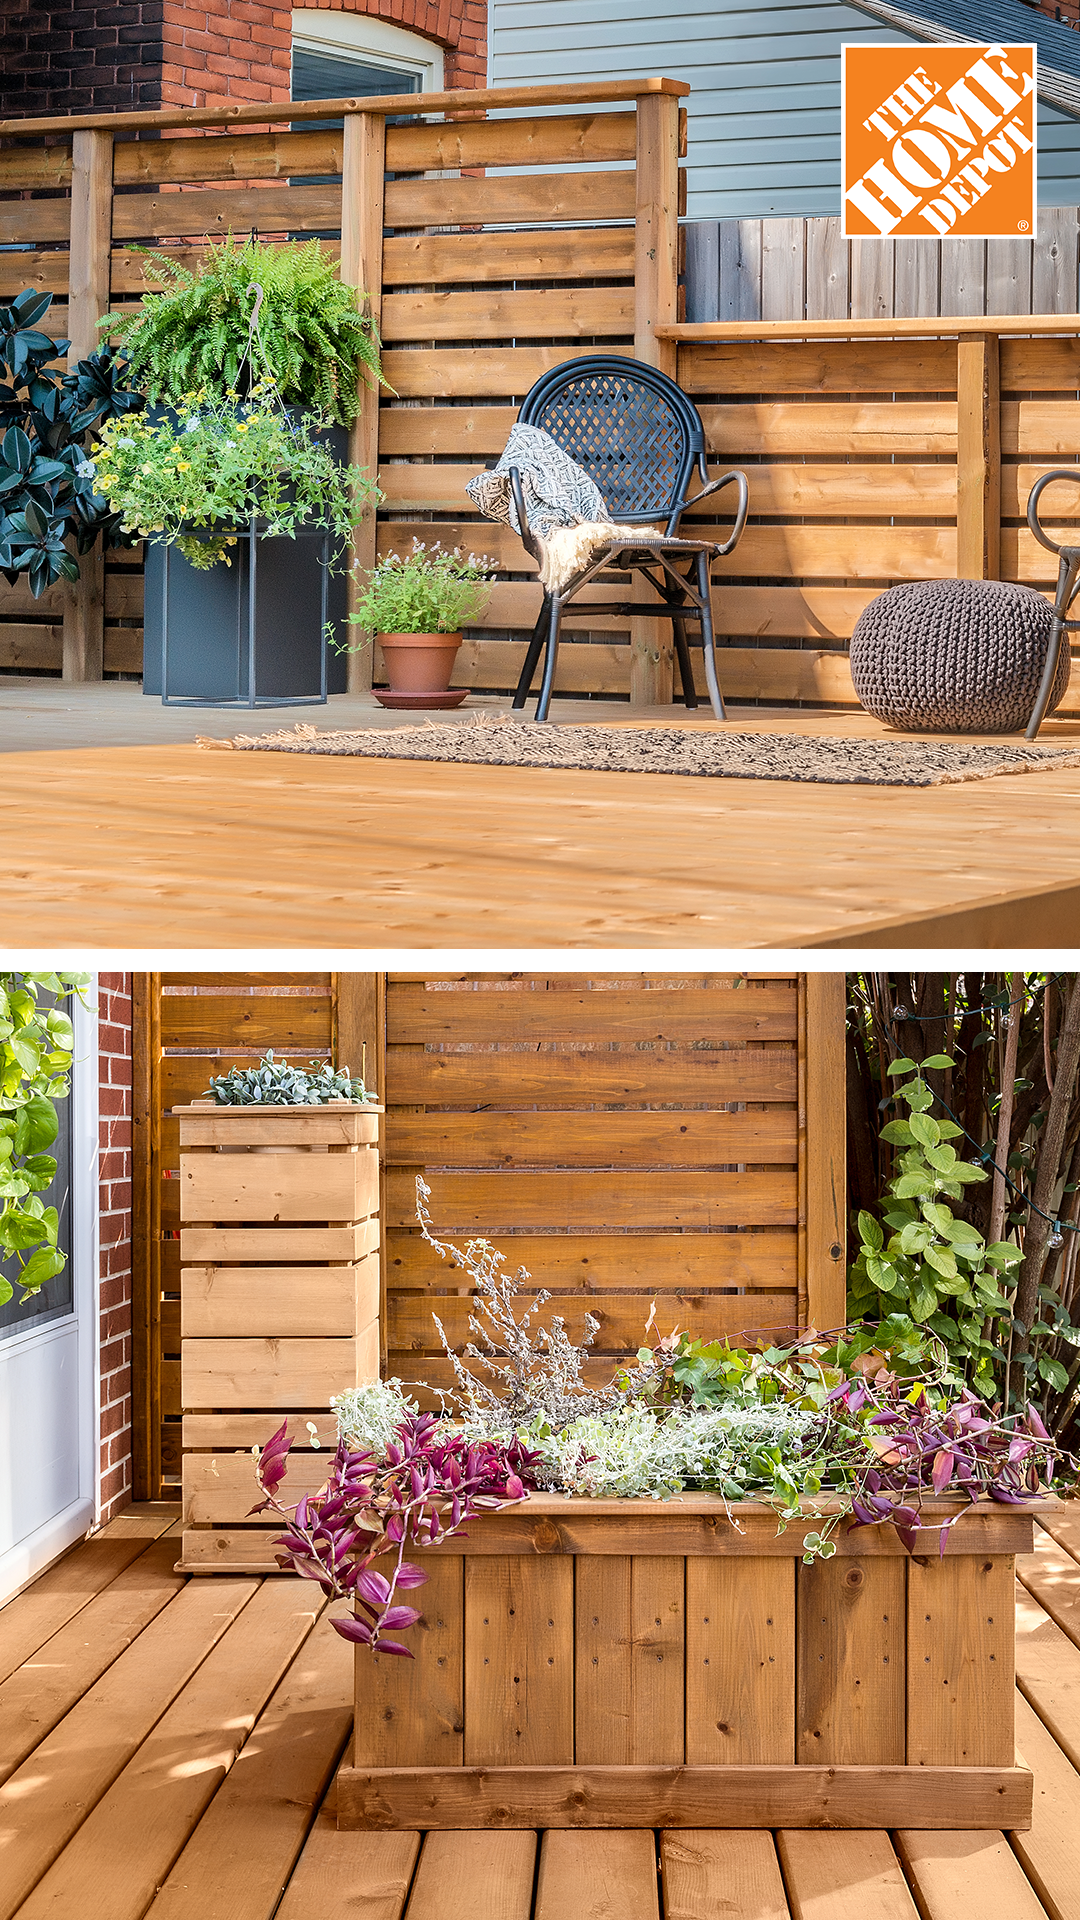 Do It Yourself Home Design: Pressure-treated Wood That Looks Beautiful And Is Cost